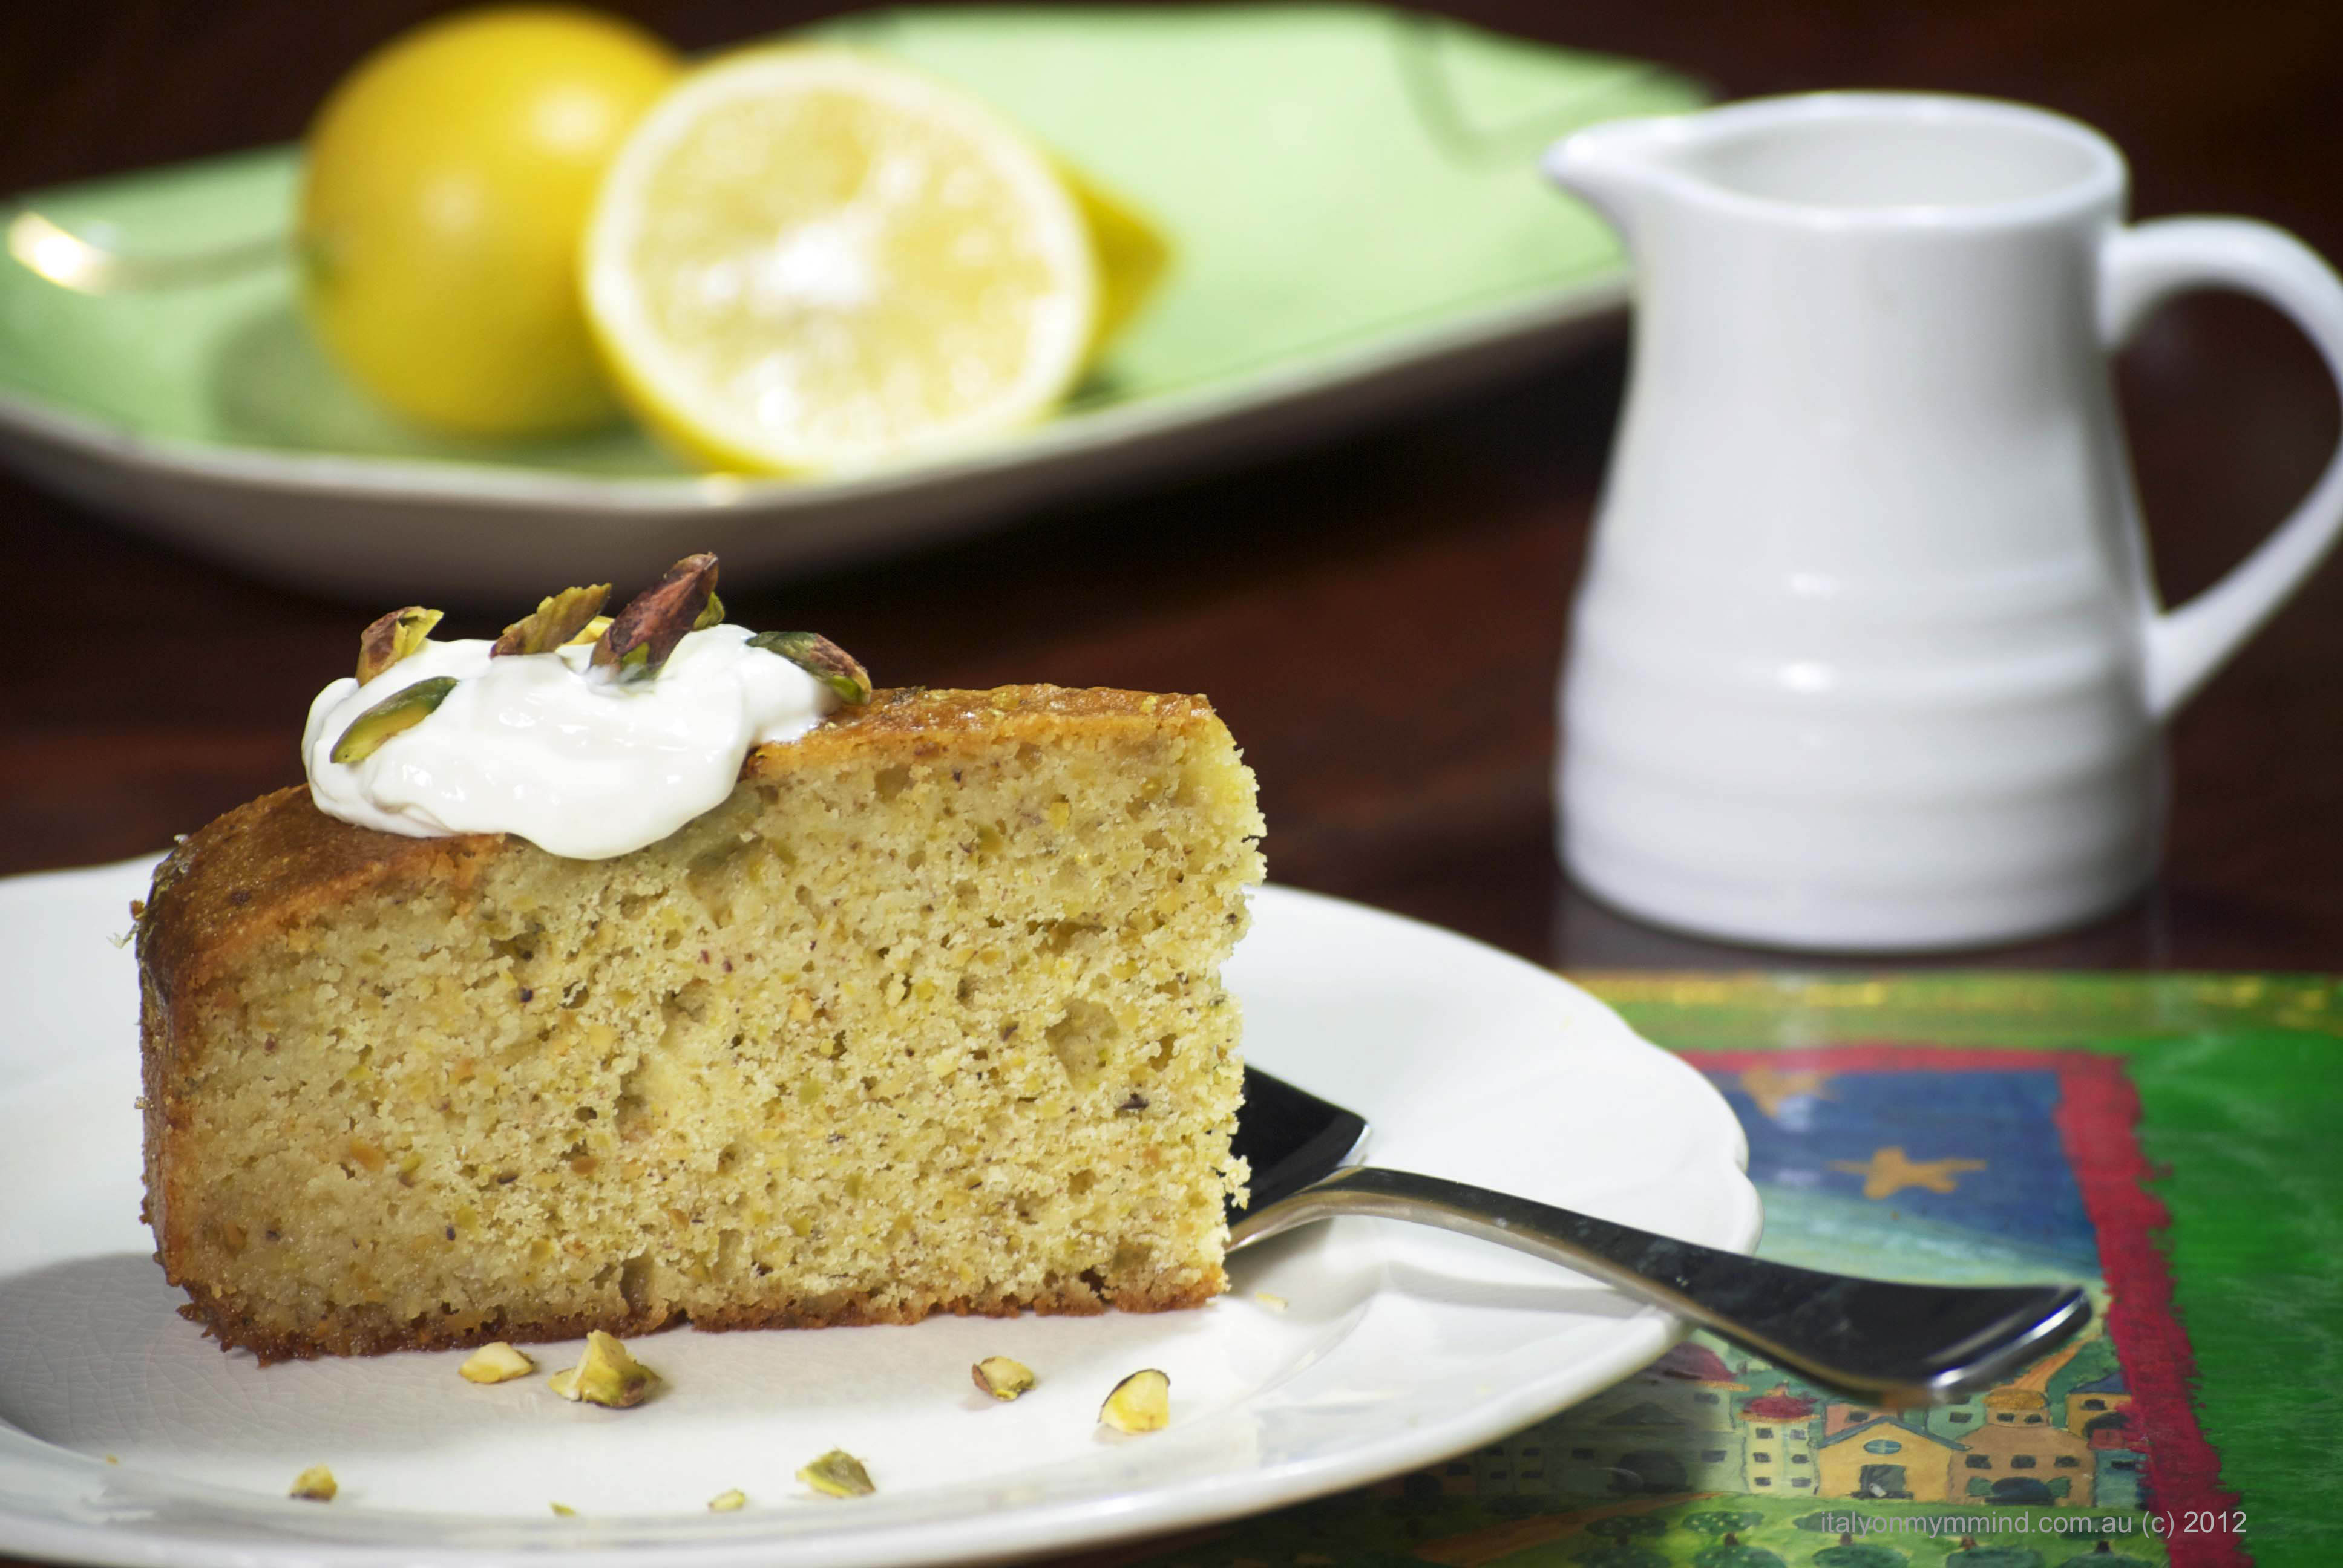 Lemon, semolina and pistachio syrup cake